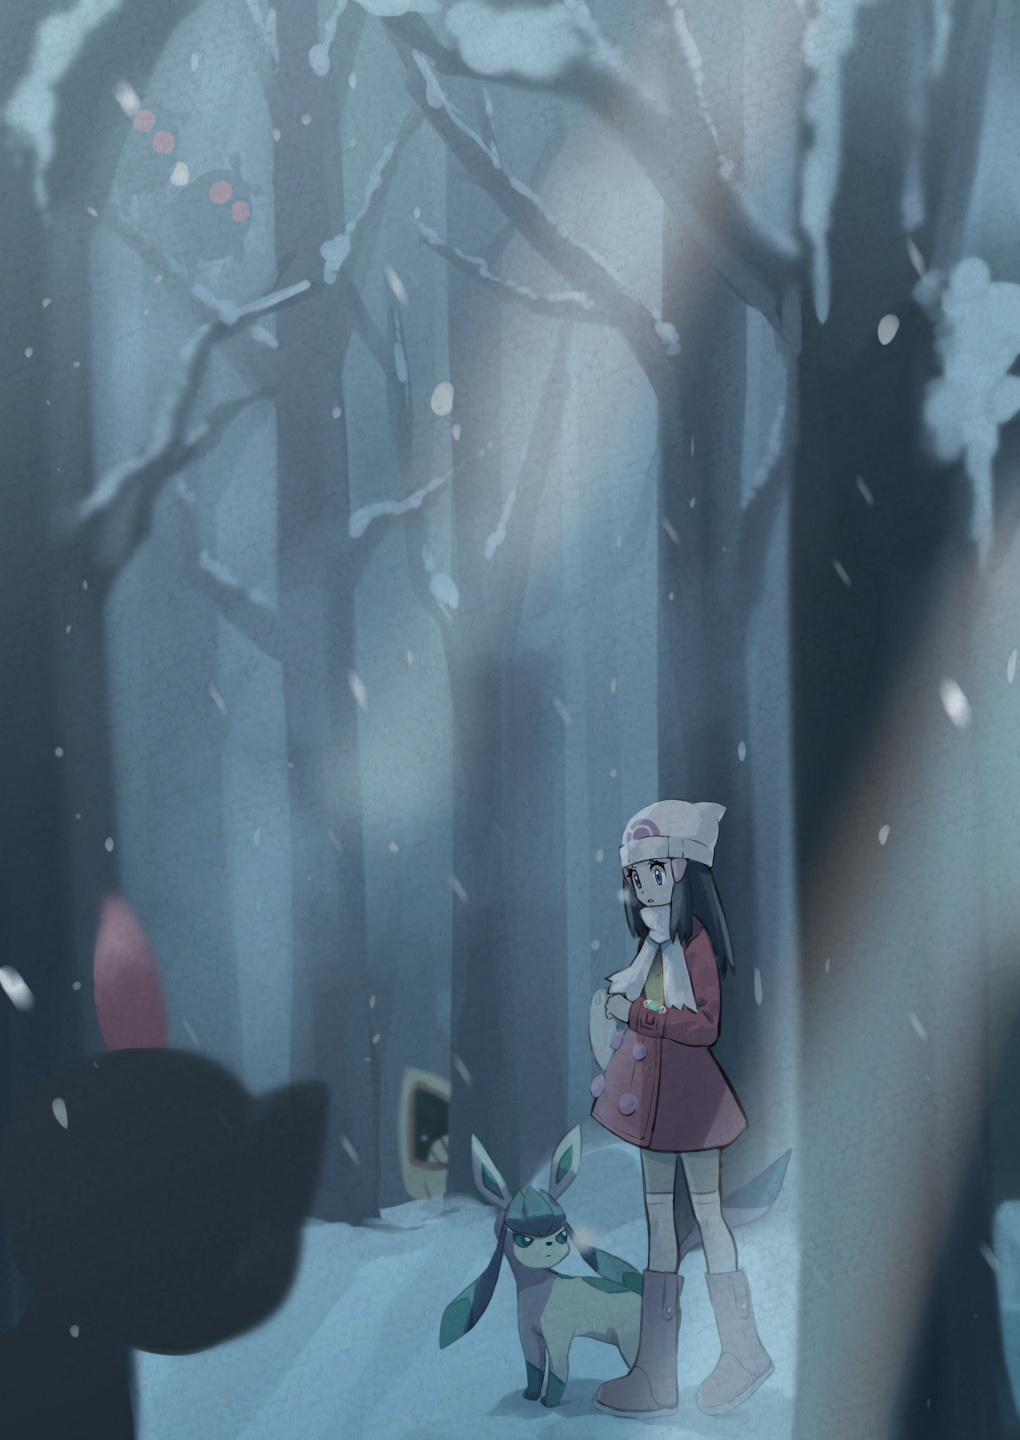 1girl bare_tree beanie boots buttons commentary_request gen_2_pokemon gen_3_pokemon gen_4_pokemon glaceon hair_ornament hairclip hat highres hikari_(pokemon) hoothoot long_hair long_sleeves outdoors pink_footwear pokemon pokemon_(creature) pokemon_(game) pokemon_dppt pokemon_platinum scarf sneasel snorunt snow snowing standing thigh-highs tree walking white_headwear white_legwear white_scarf winter winter_clothes yamabuki0